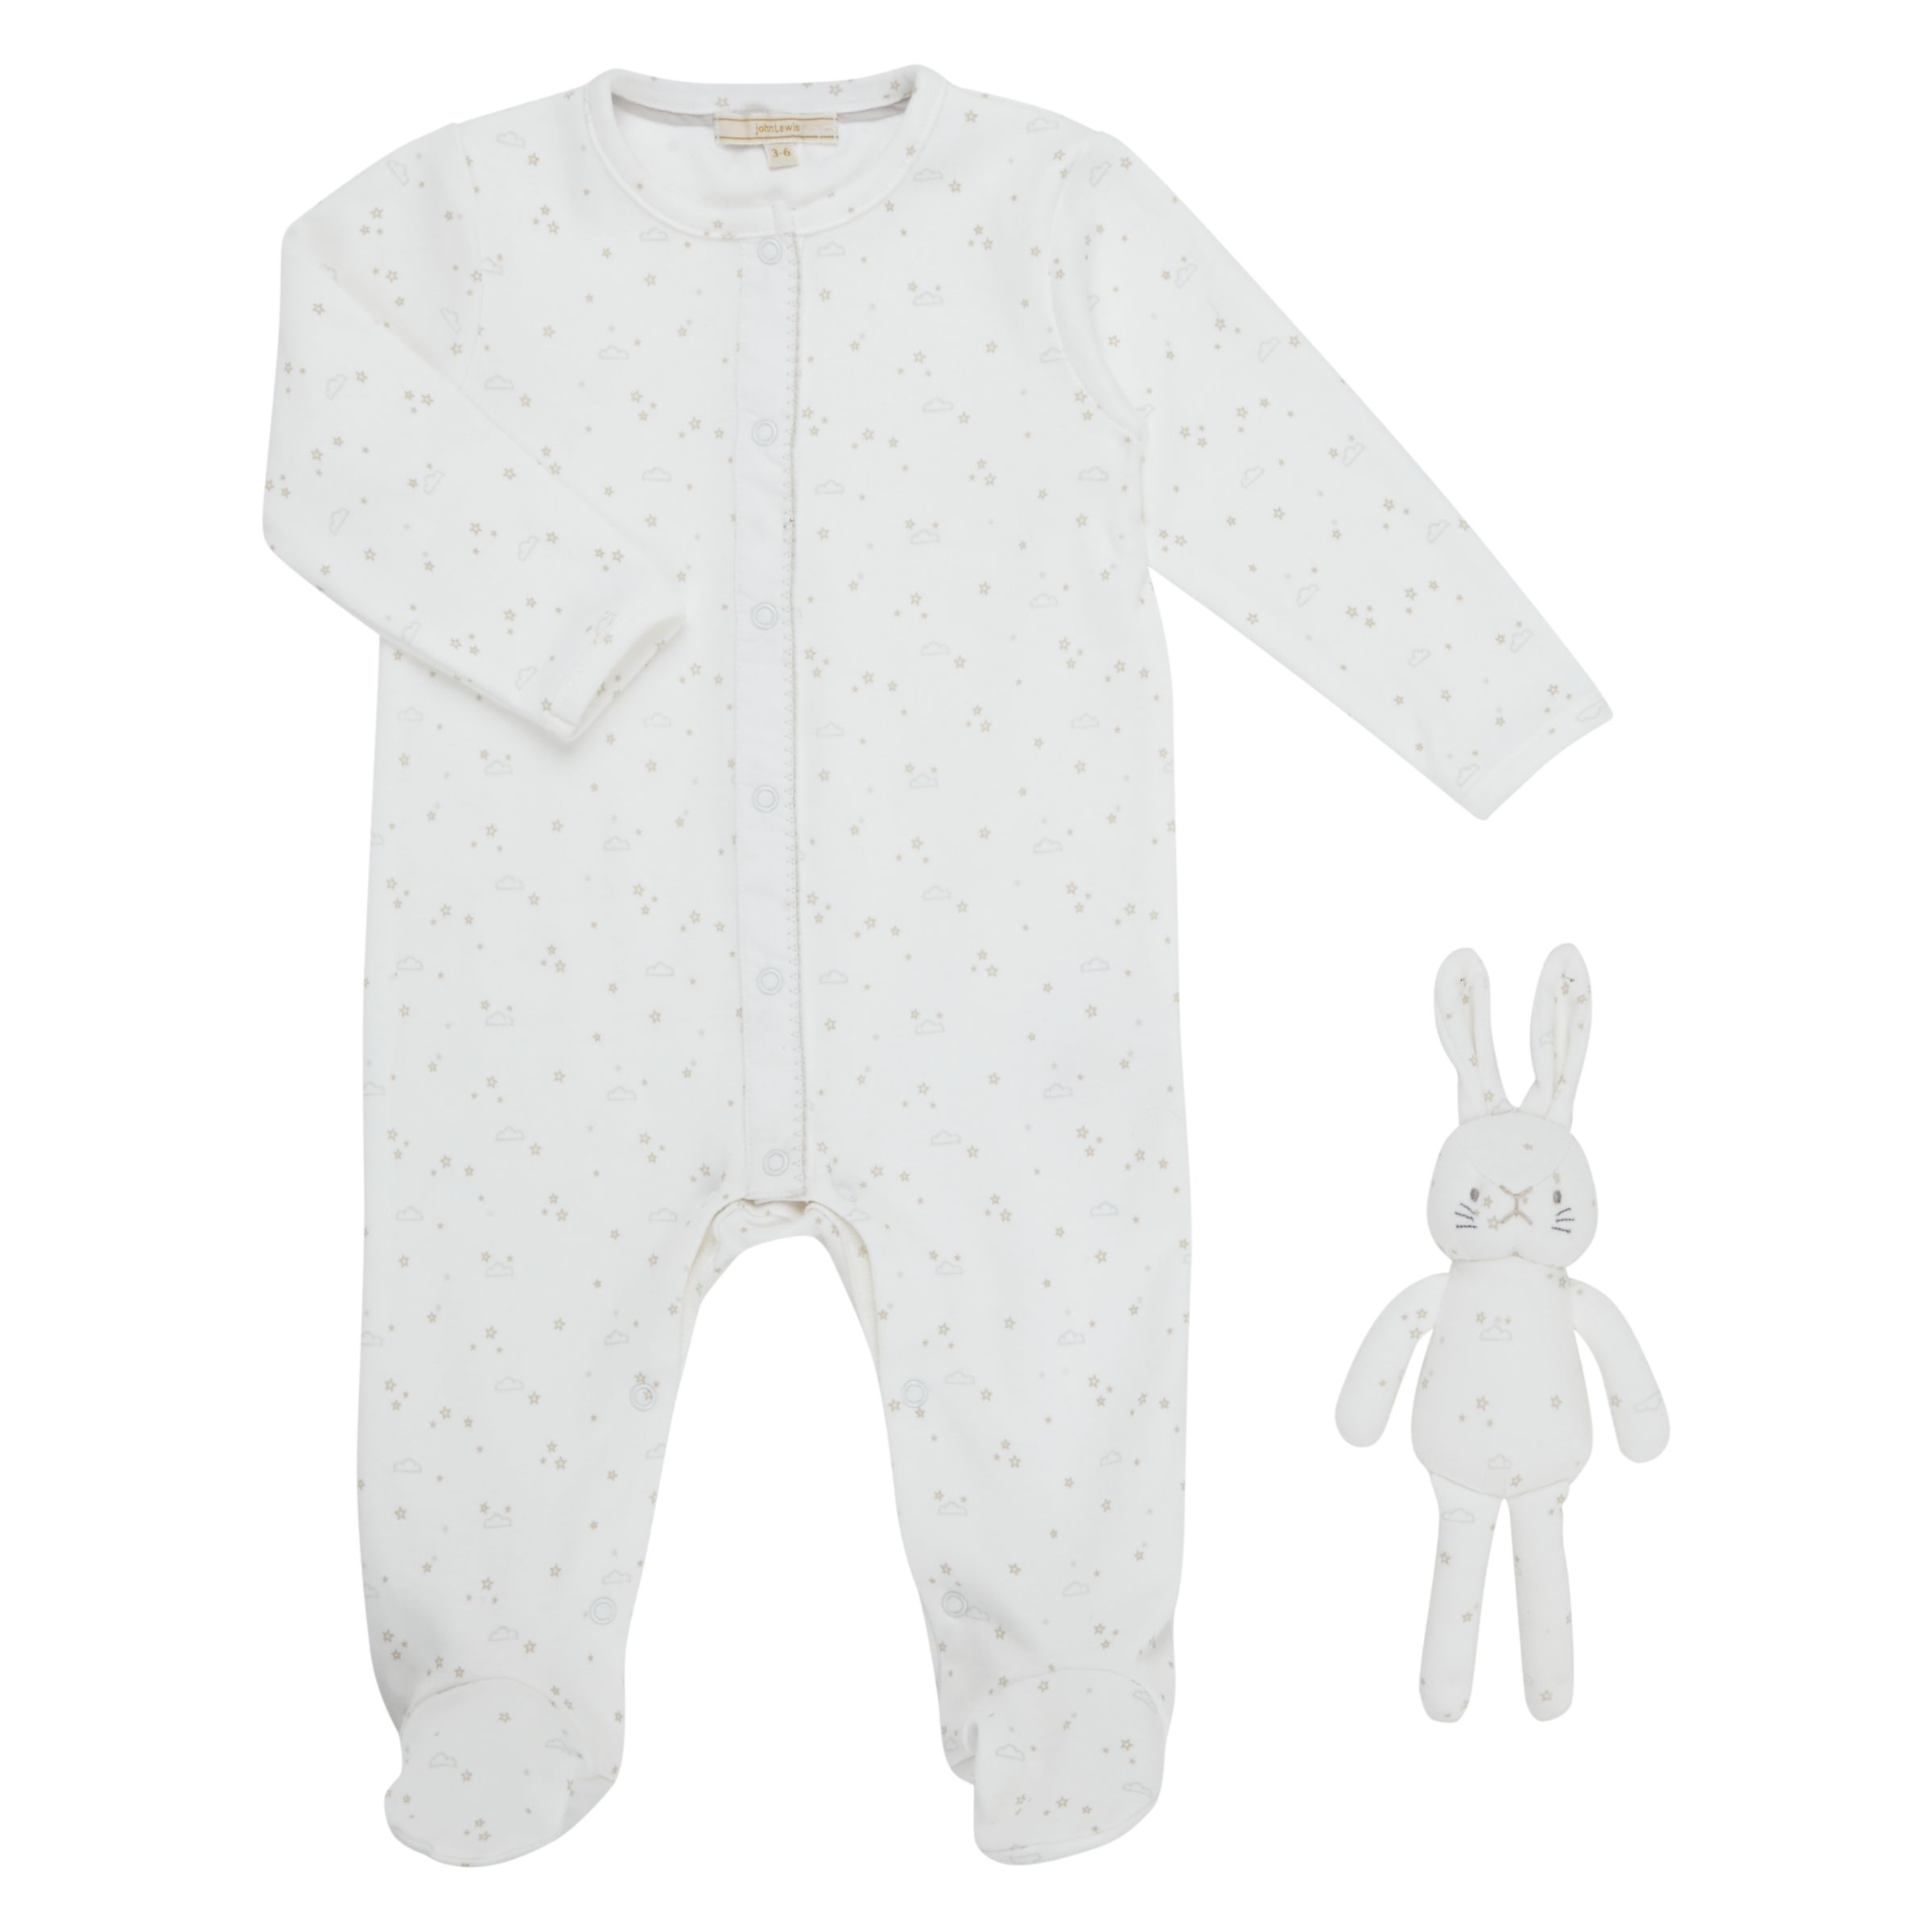 John Lewis Heirloom Collection John Lewis Heirloom Collection Baby Printed Sleepsuit with Toy, White